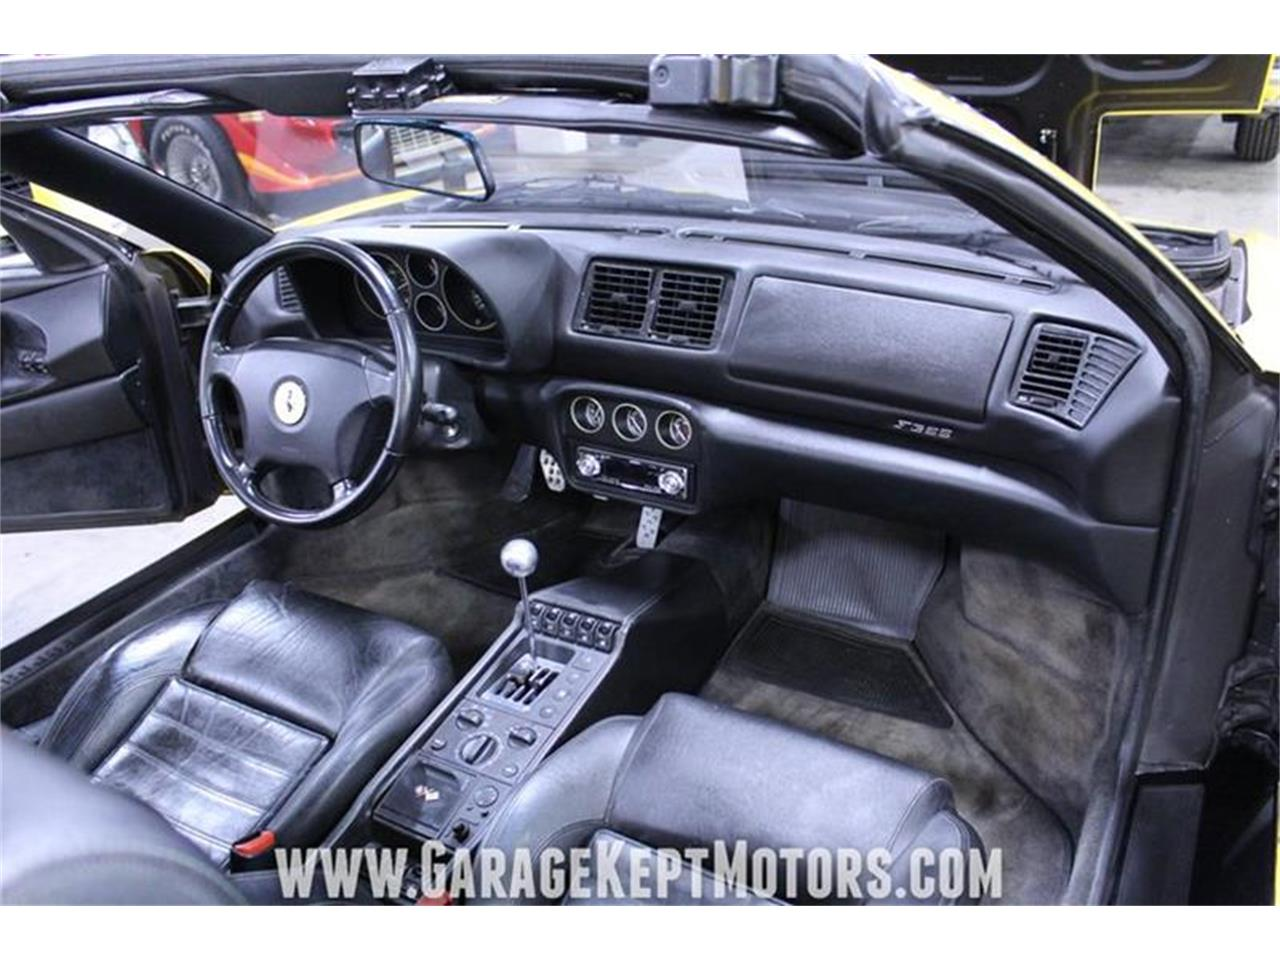 Large Picture of '97 Ferrari F355 located in Grand Rapids Michigan - PWXC